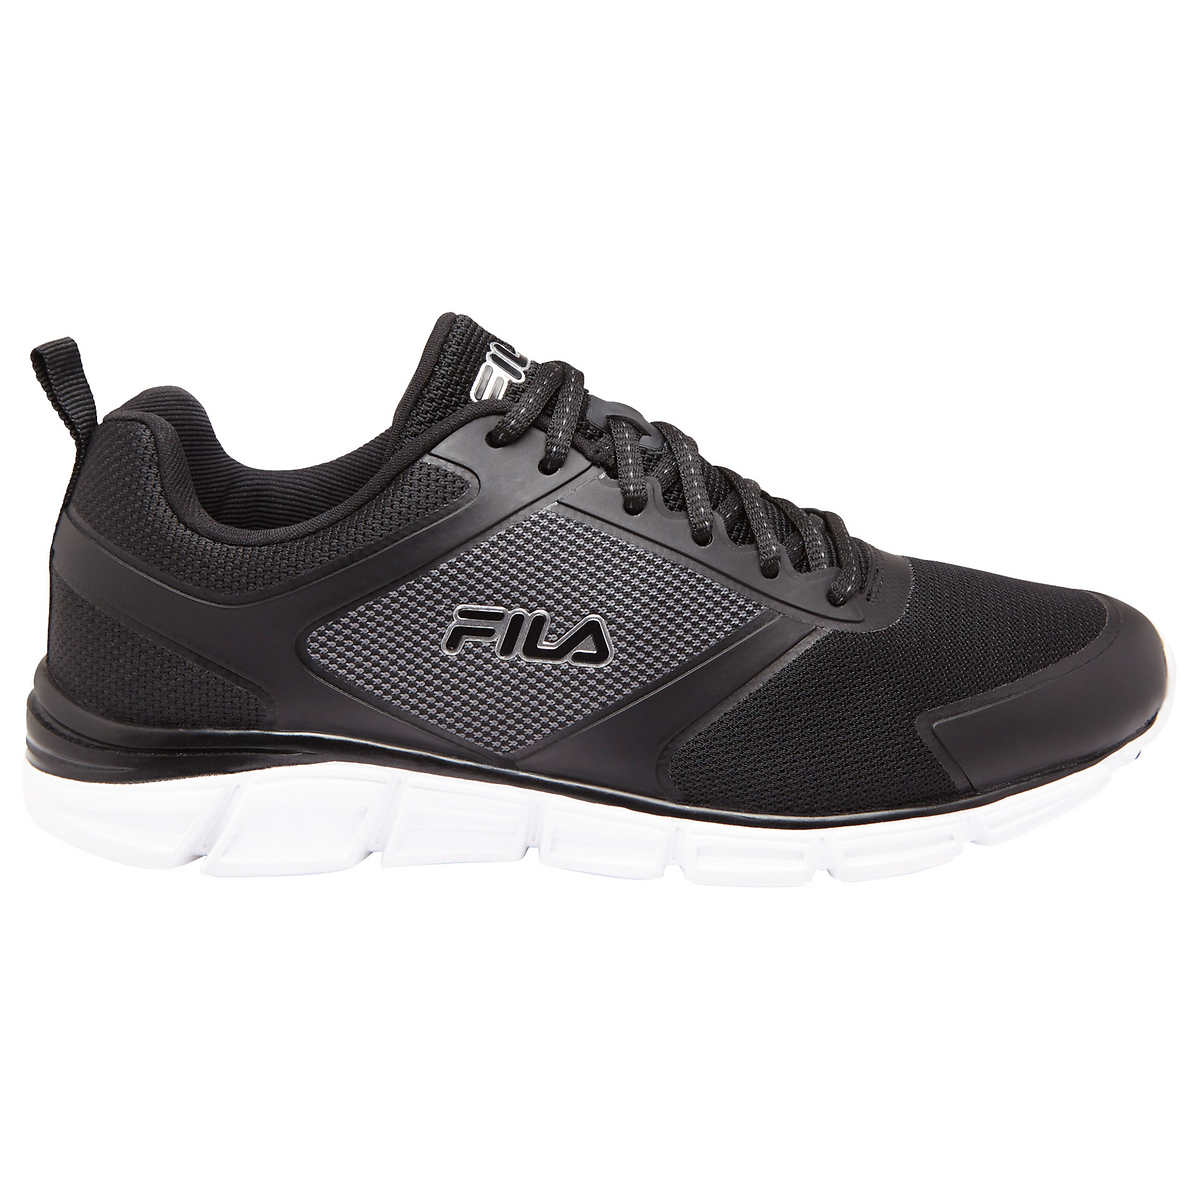 FILA FILA Men's Memory Foam SteelSprint Athletic Shoes